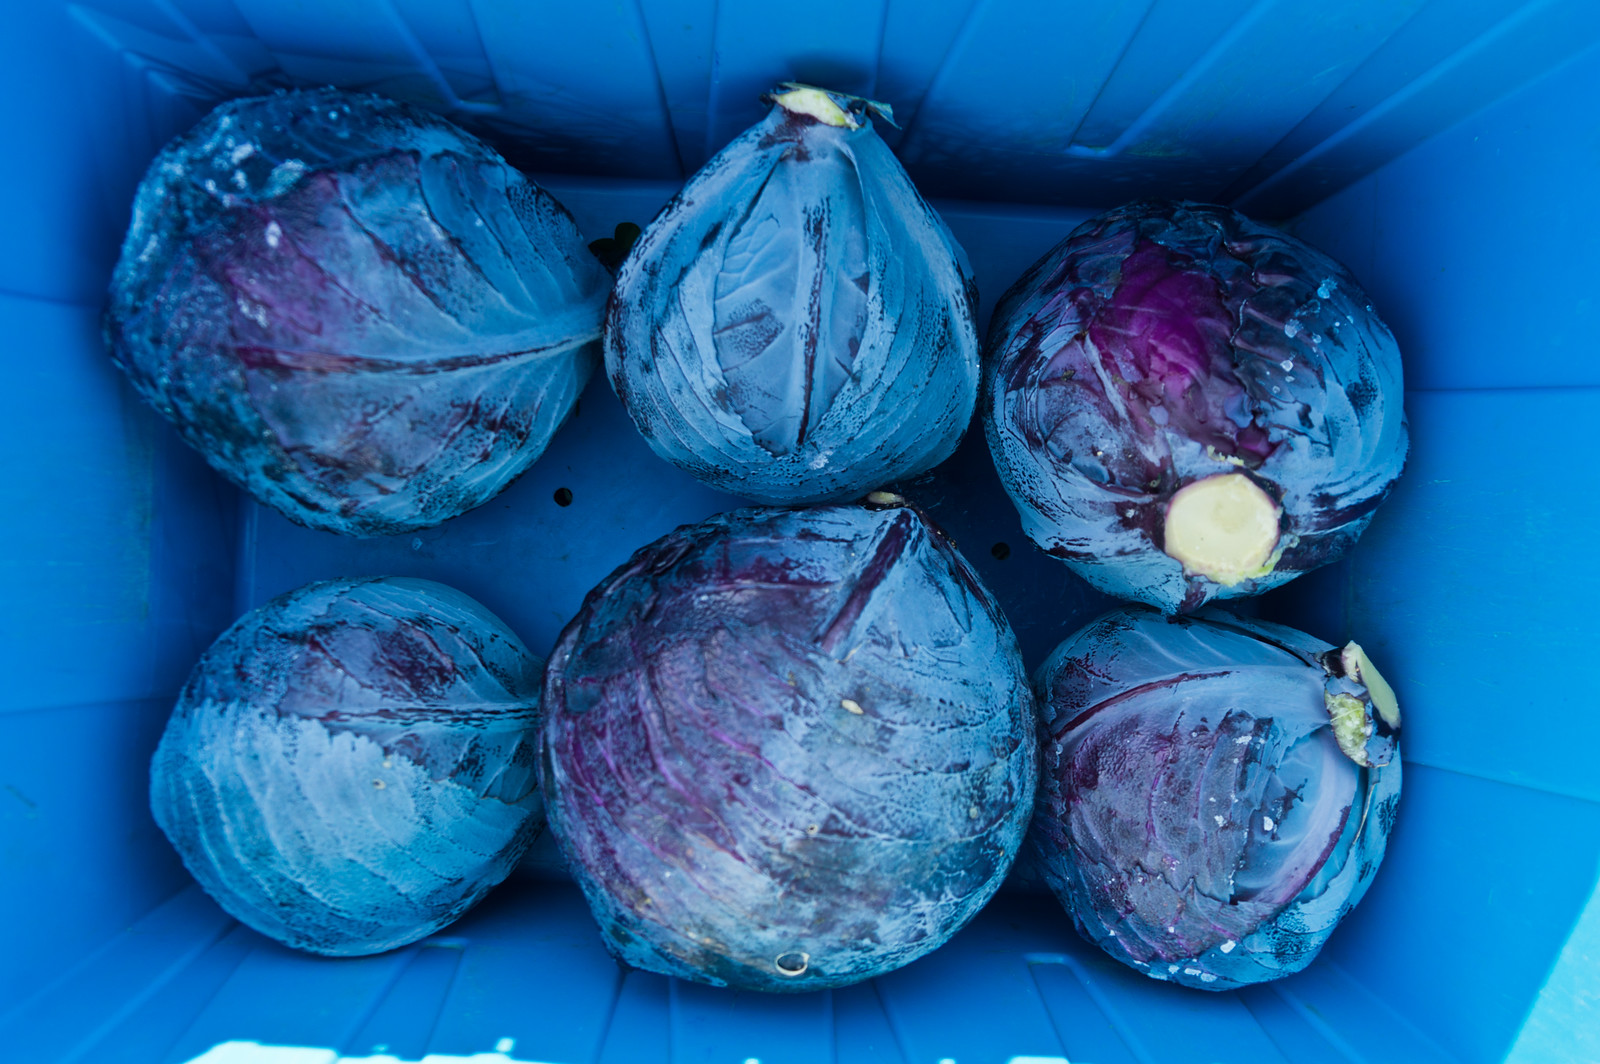 I'm loving the colors of this photo, red cabbage harvested into our blue bins, photo by Adam Ford